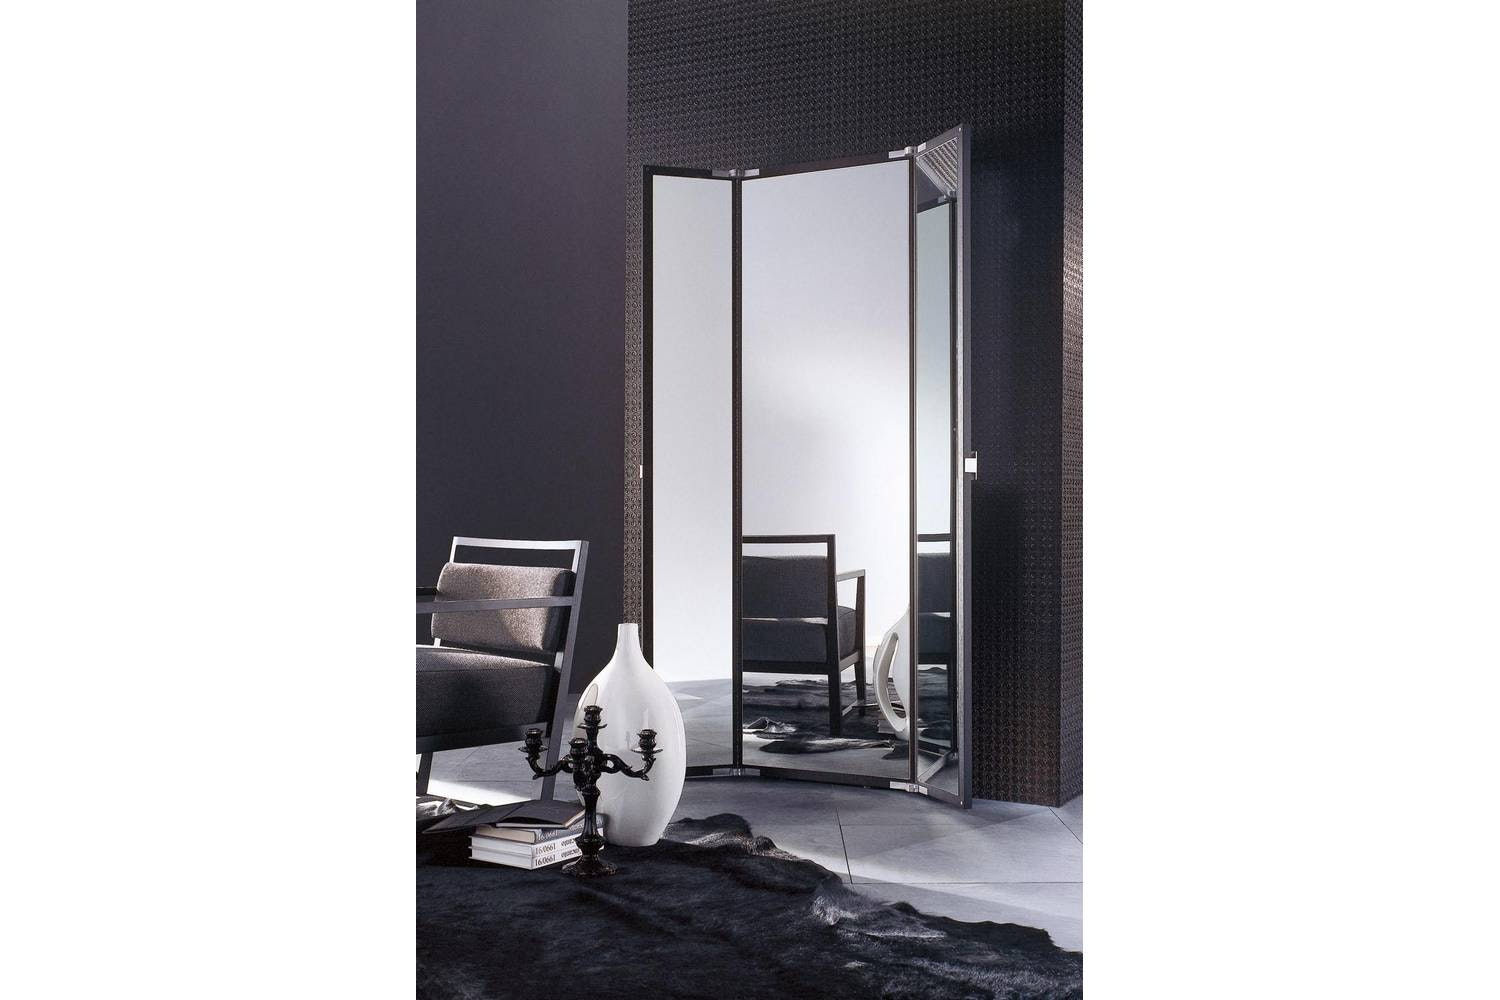 Bellavista Mirror by Marelli & Molteni for Porada